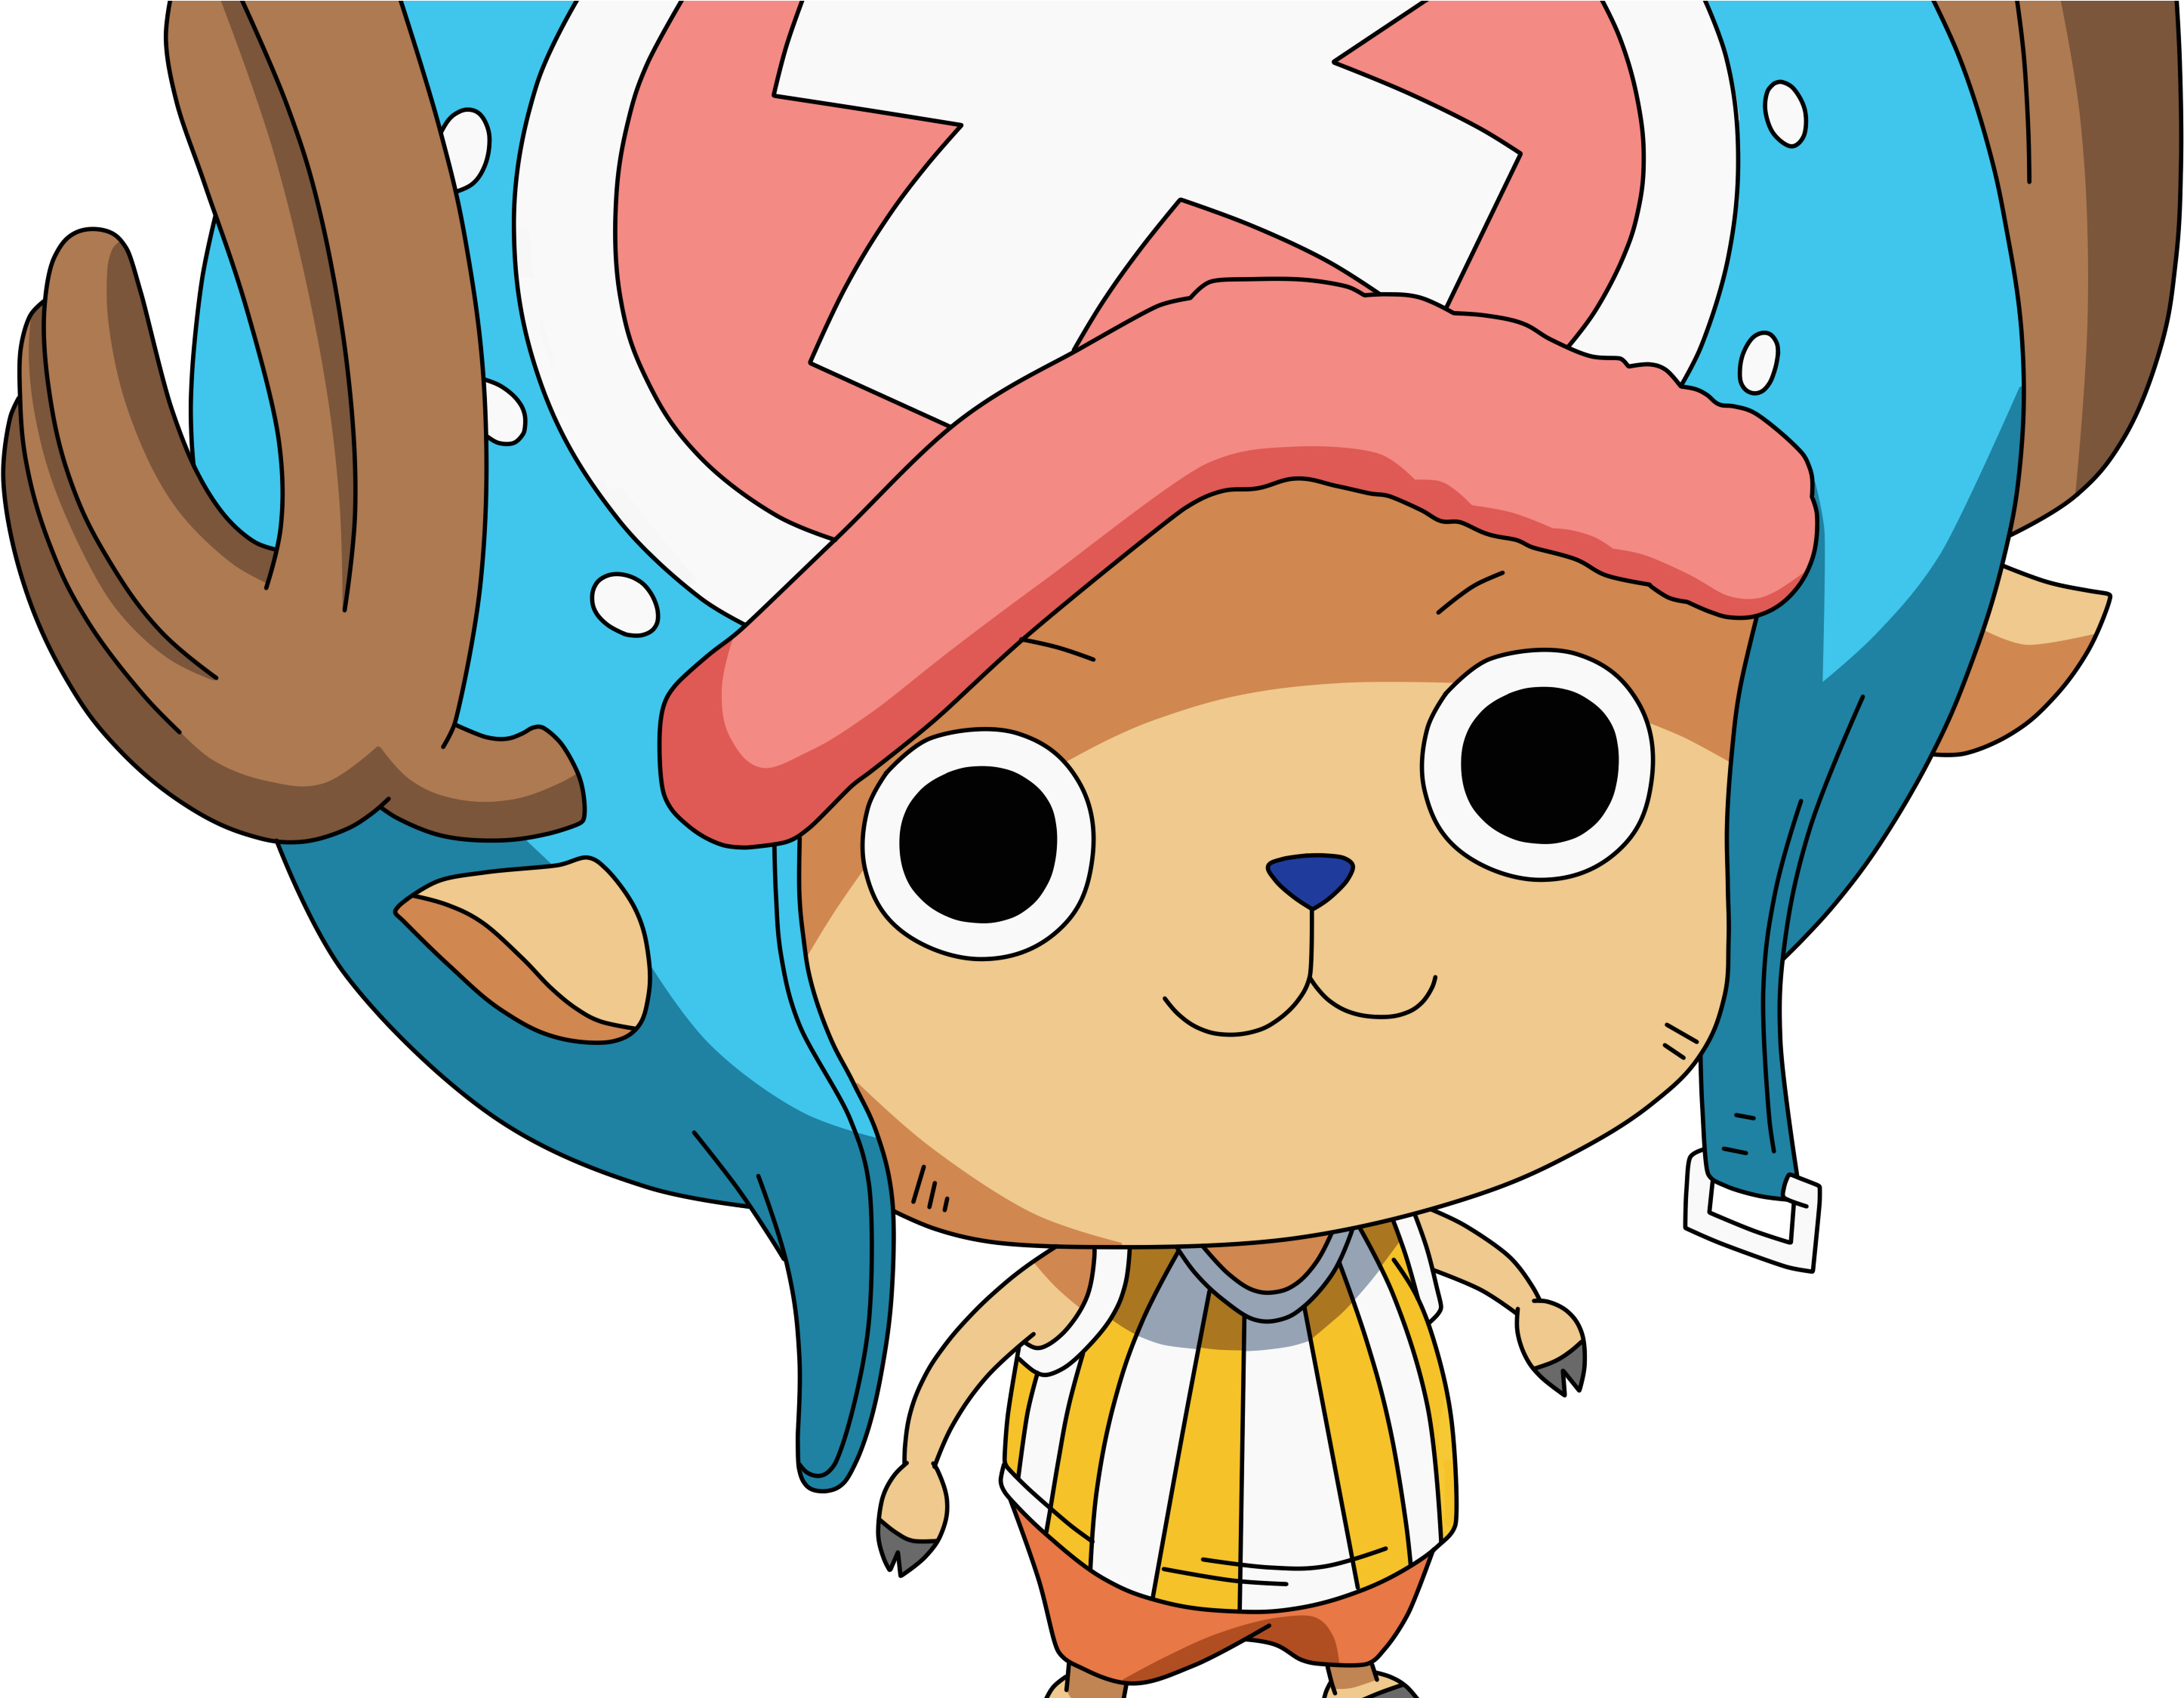 Hd One Piece Chopper Wallpapers For Android On Wallpaper Tony Tony Chopper Wallpaper Hd 2893x2249 Download Hd Wallpaper Wallpapertip